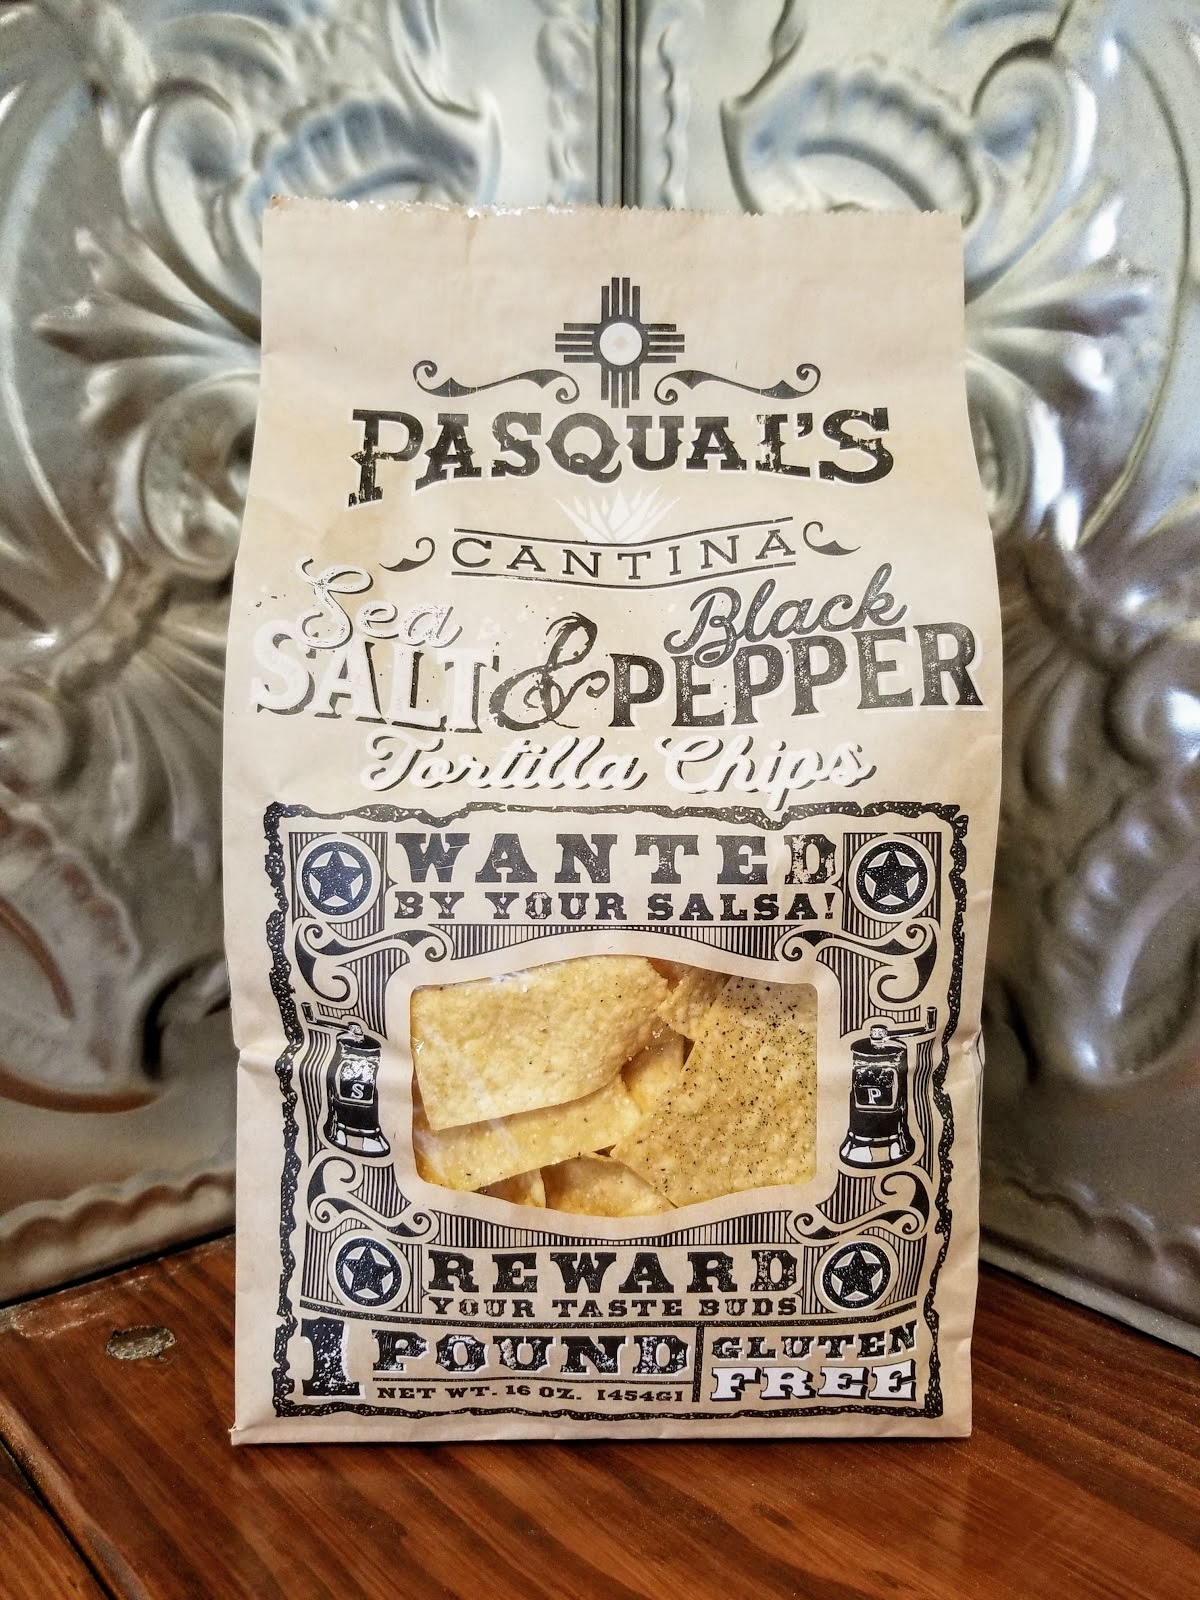 Sea Salt & Black Pepper TOrtilla Chips - Our same perfectly crisp and flaky tortilla chip, lightly salted and dusted with a hint of black pepper. That guacamole won't know what hit it.Click here for more product information.